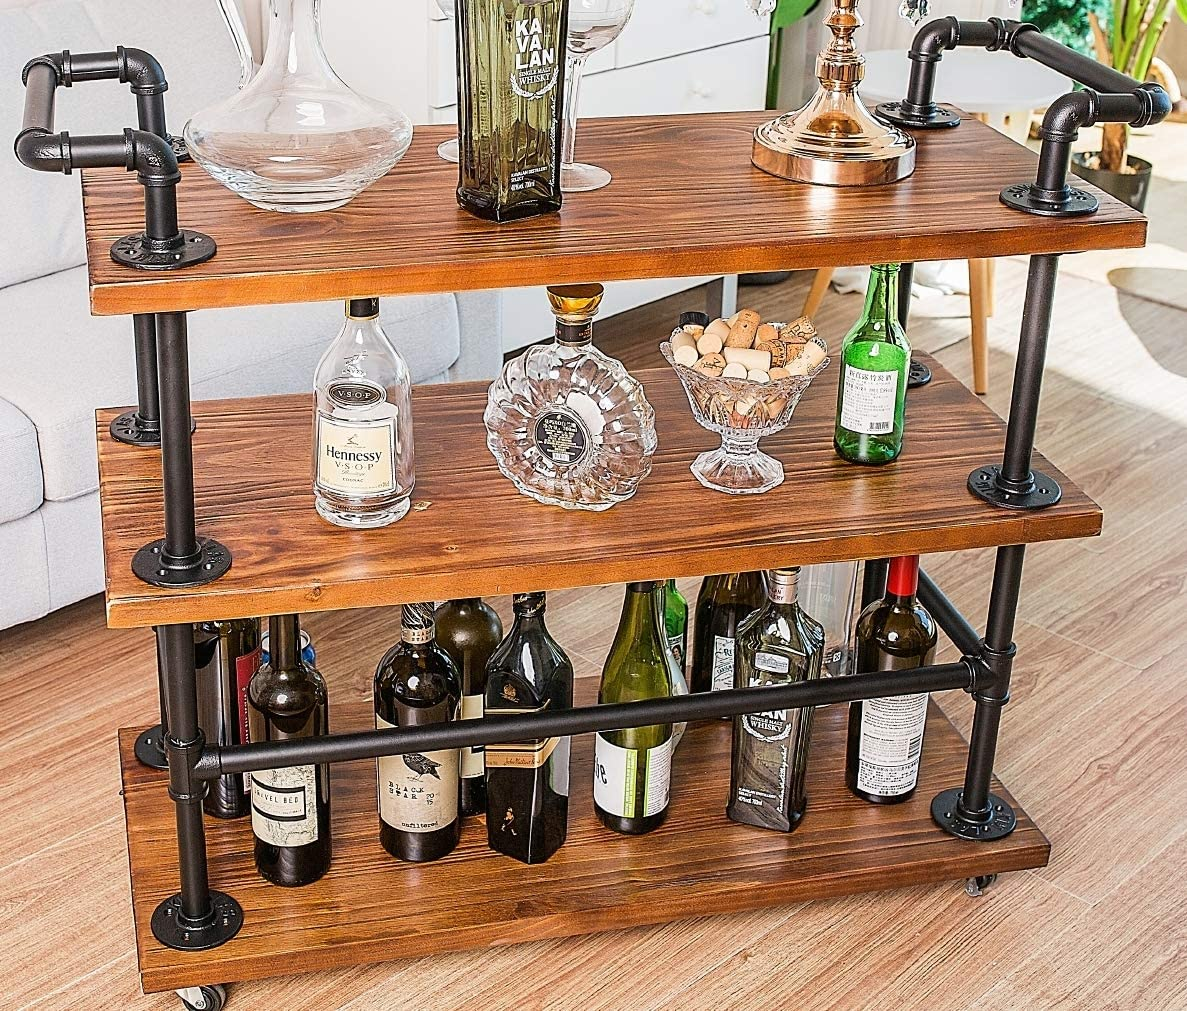 DOFURNILIM Best Bar Carts Serving Carts Kitchen Carts Wine Rack Carts on Wheel